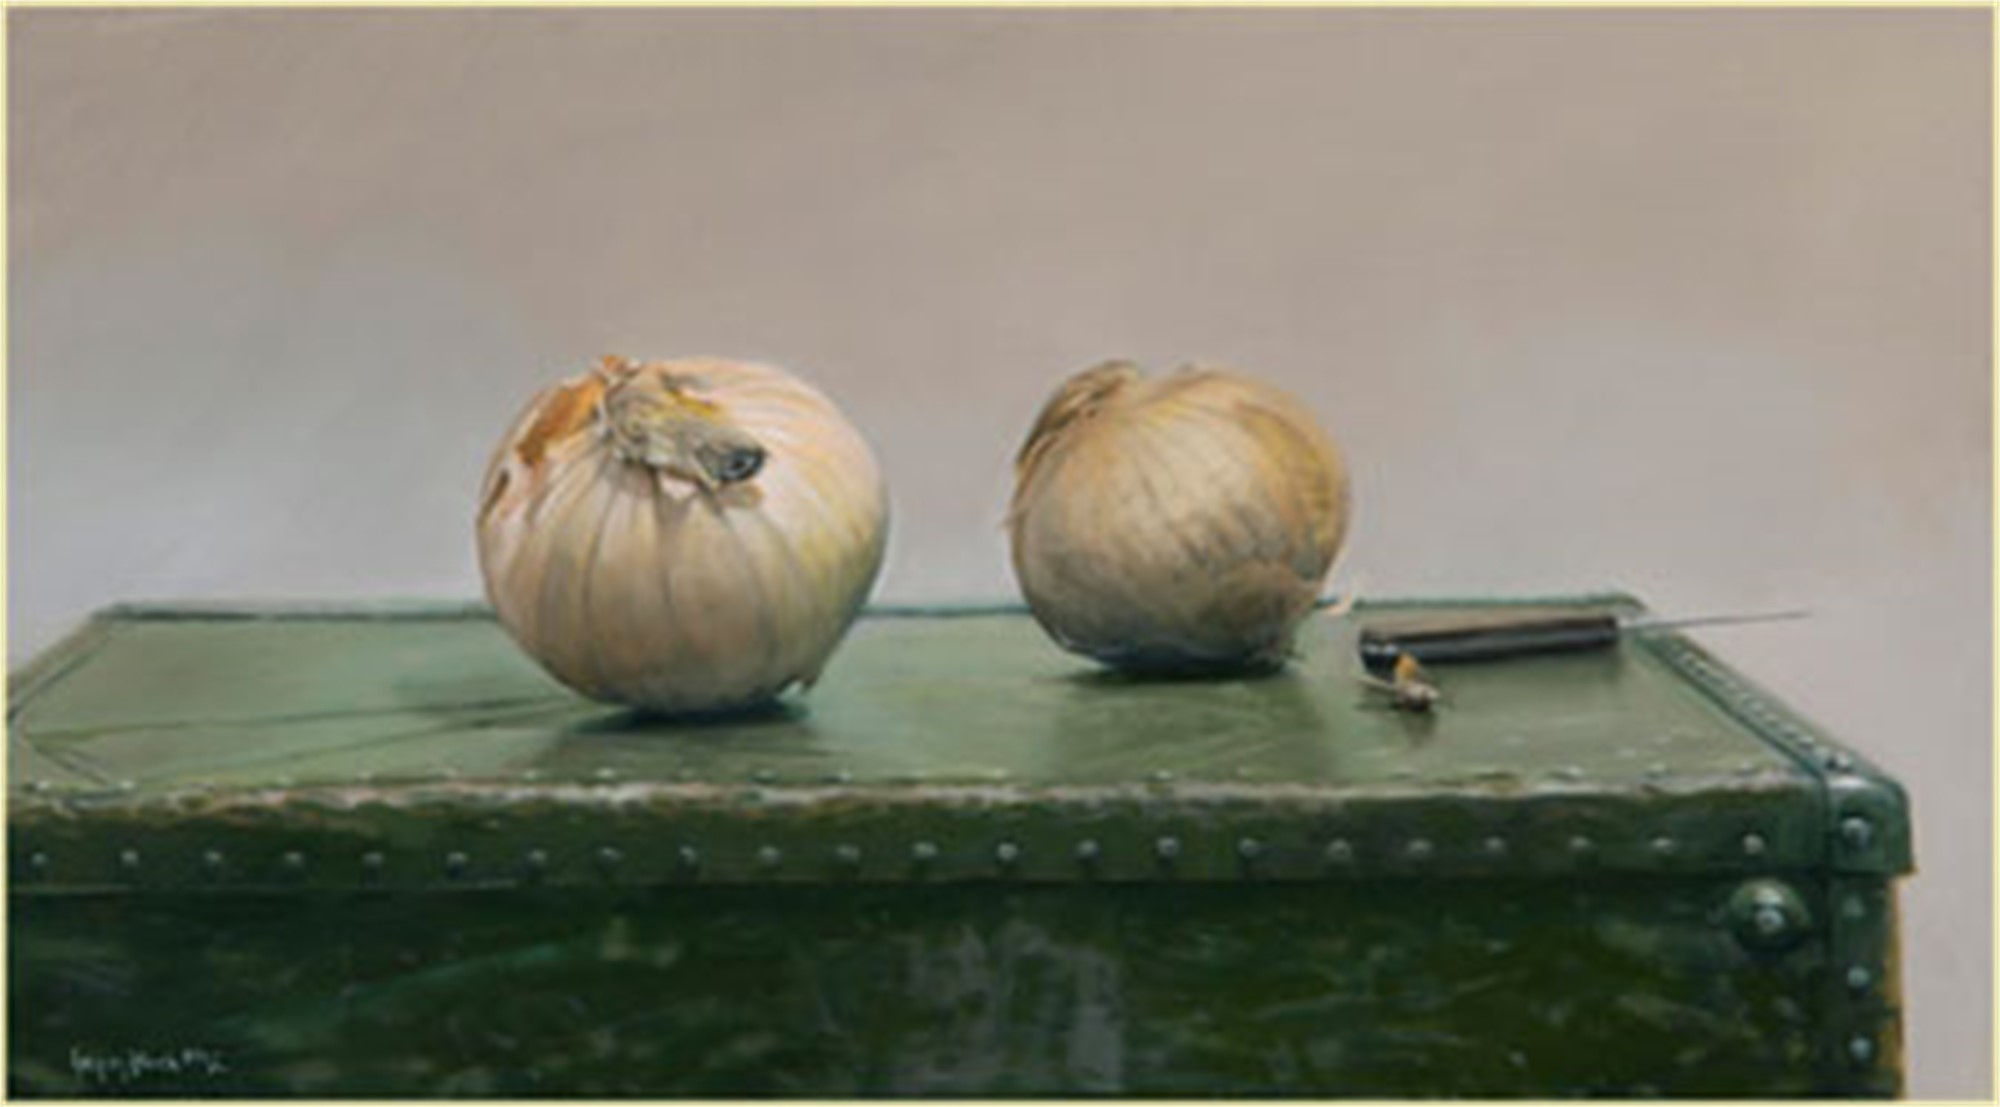 Onions on a Suitcase by Gregory Block